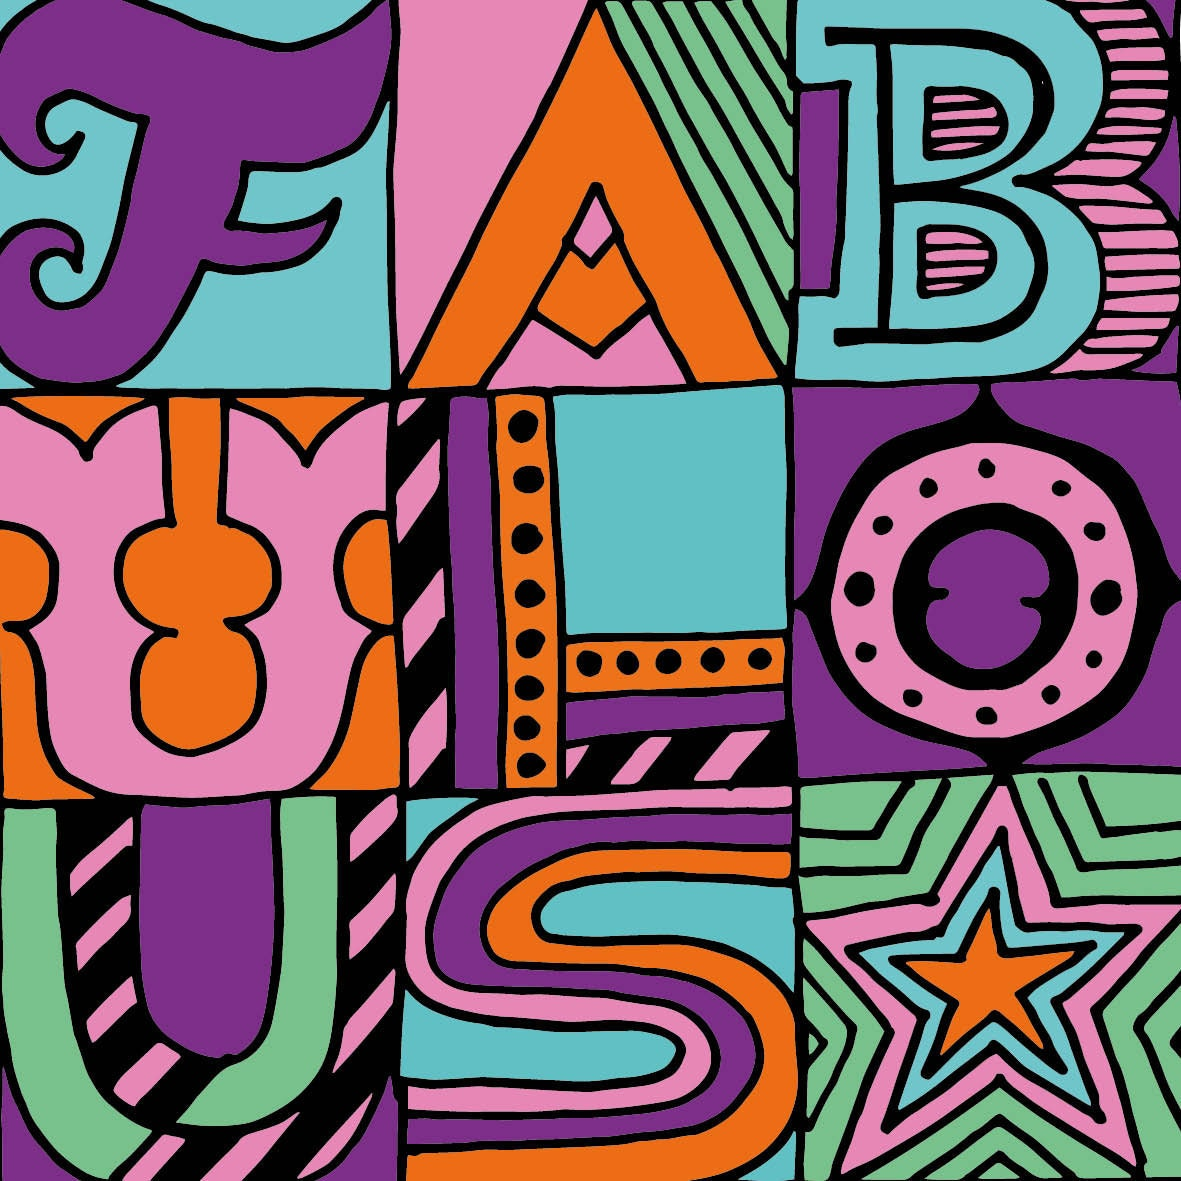 365 days of type fabulous